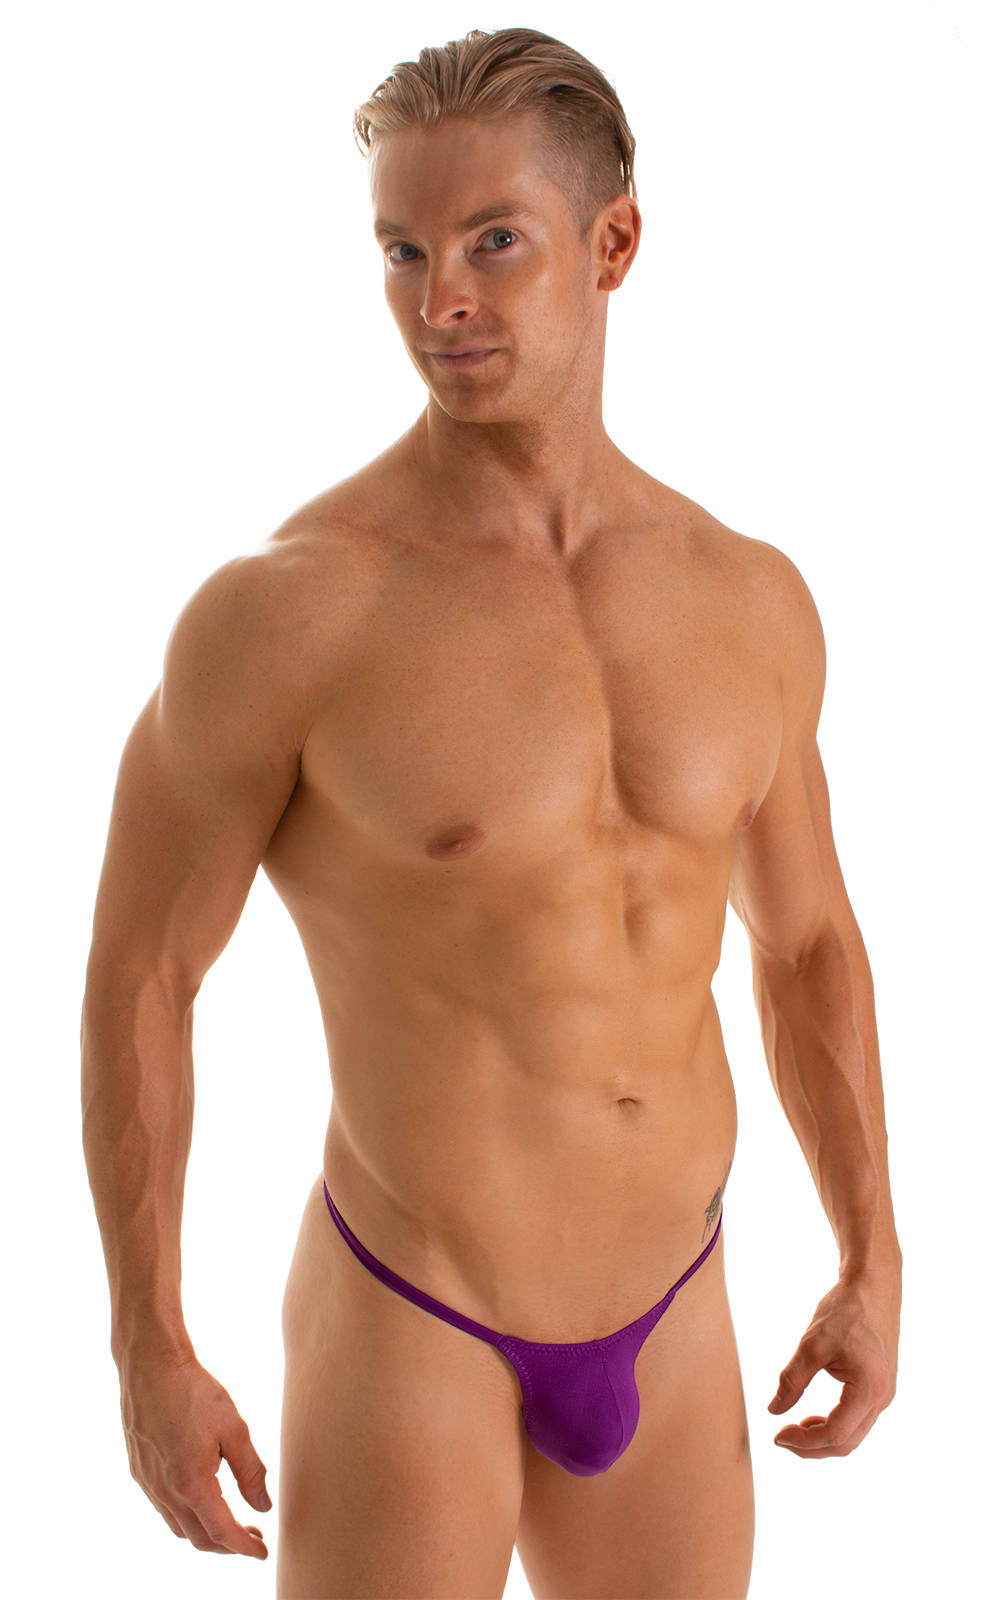 Stuffit Pouch G String Swimsuit in ThinSKINZ Grape 1